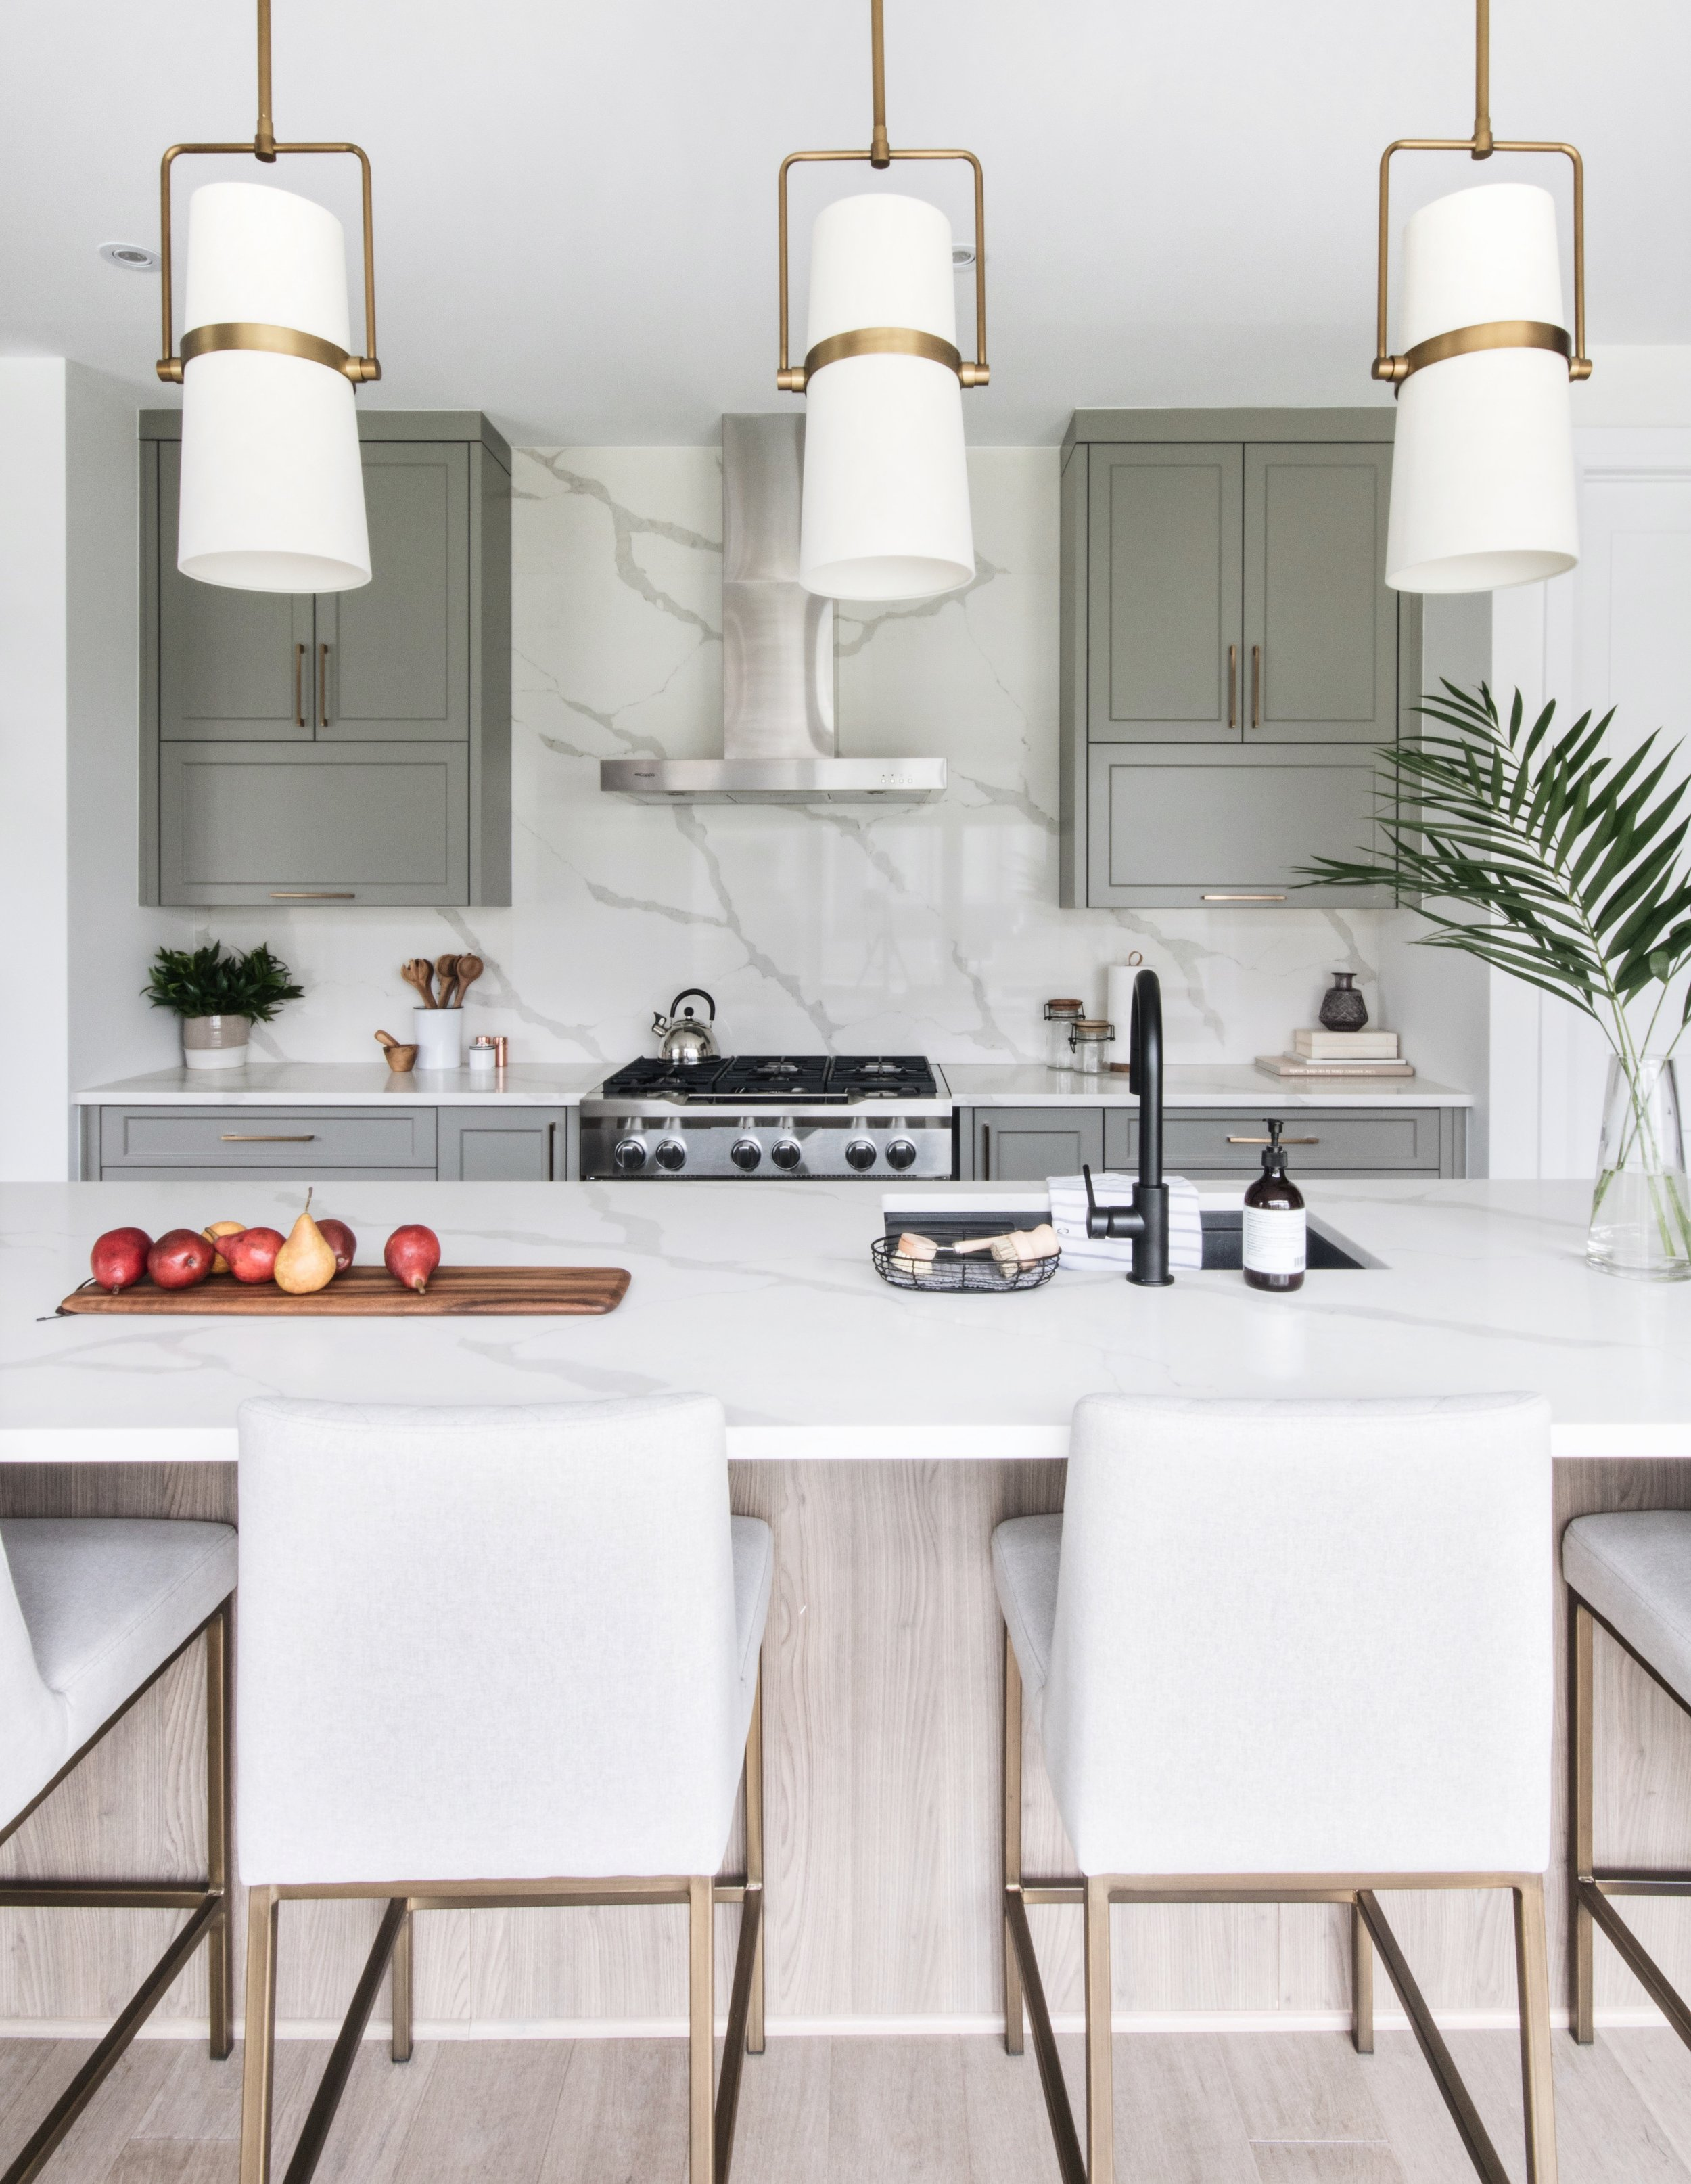 Two-toned kitchen with a laid back California vibe. Flanked on either side by a dramatic patterned tile feature wall and matte black inset cabinets.